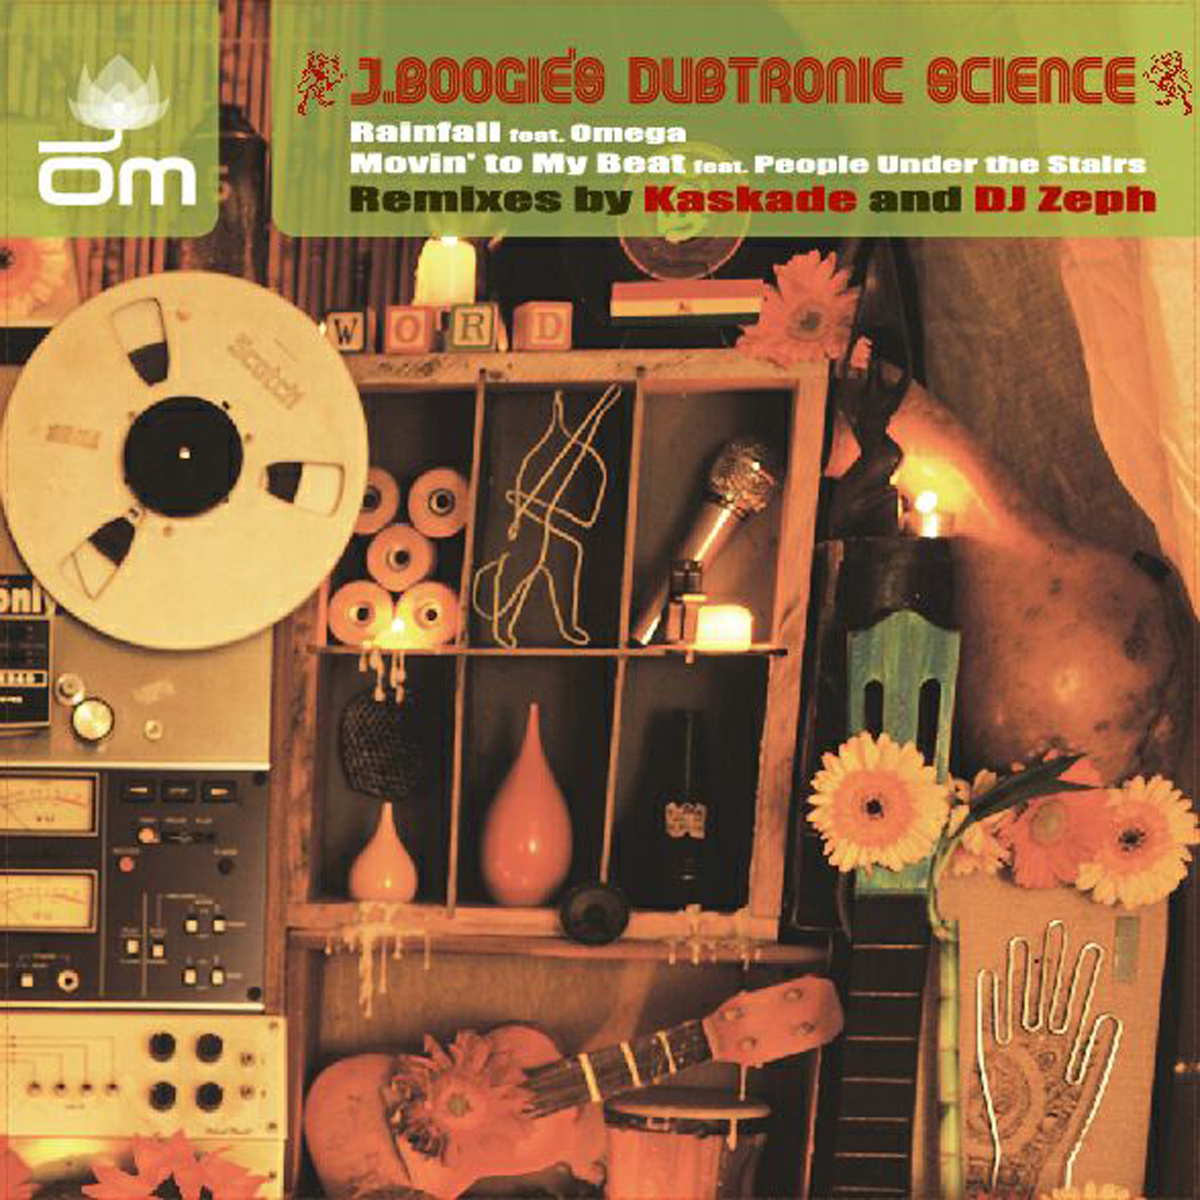 J Boogie's Dubtronic Science - Rainfall + Movin' to My Beat